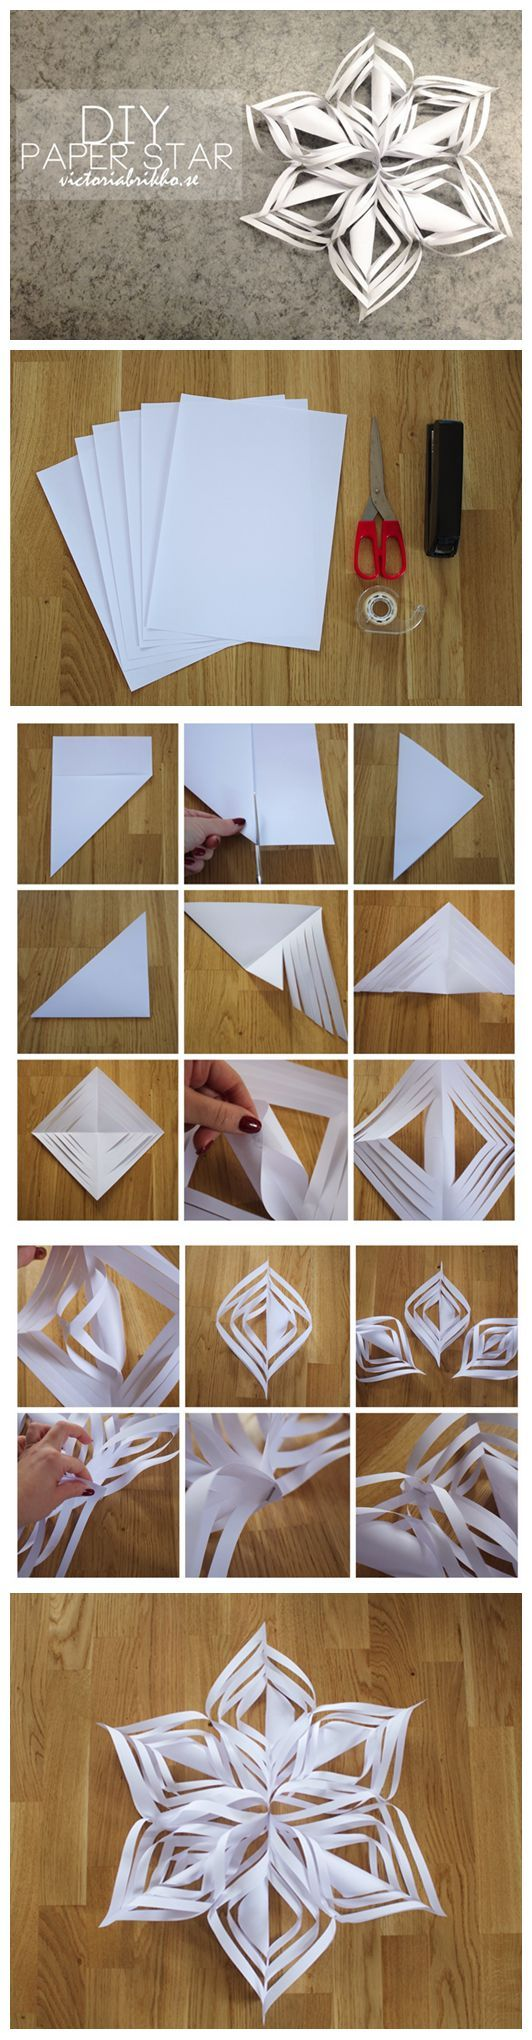 Paper Star - I used to make these all the time as a kid. Such an easy craft to teach!